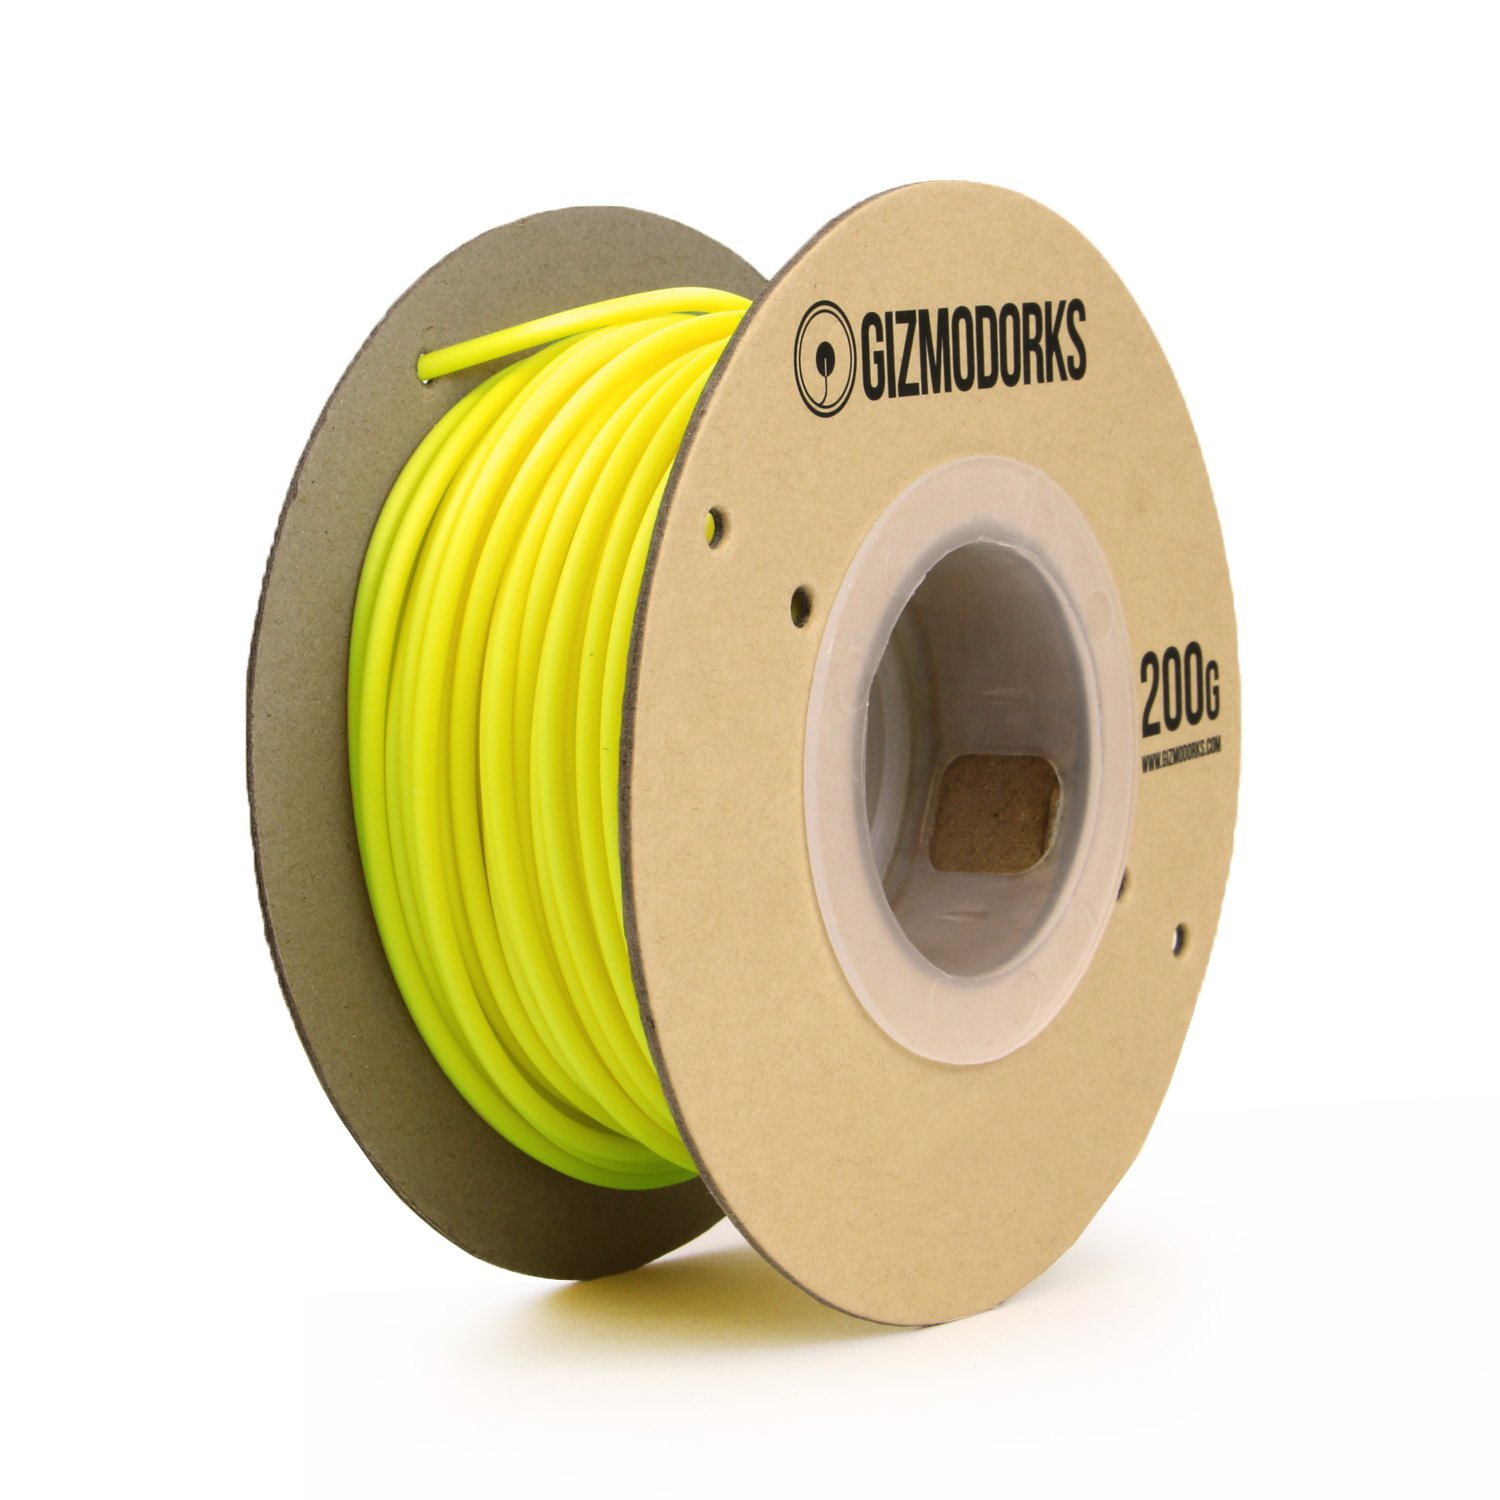 Black Light Reactive Fluorescent Yellow Gizmo Dorks PLA Filament 1.75mm 200g for 3D Printing